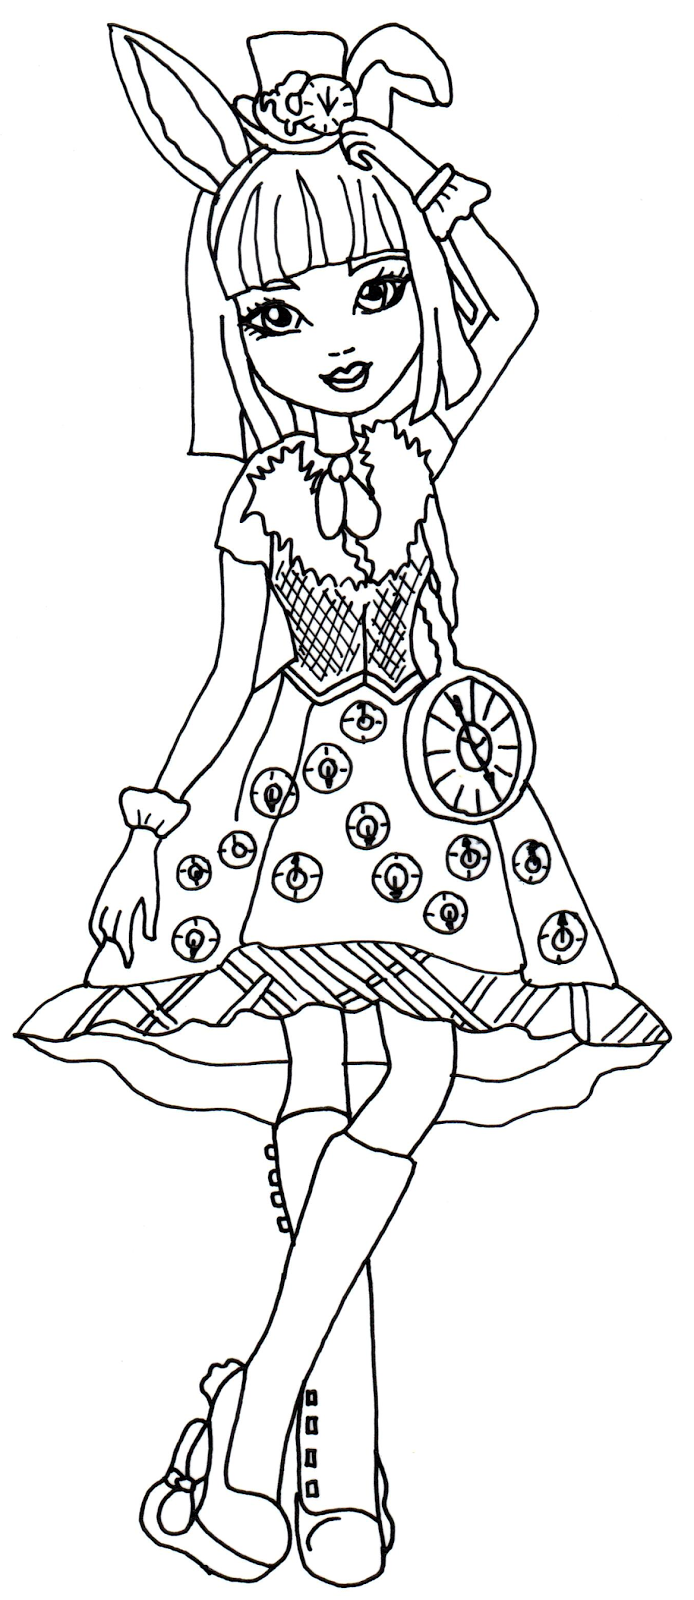 Printable coloring pages ever after high - Free Printable Ever After High Coloring Pages Bunny Blanc